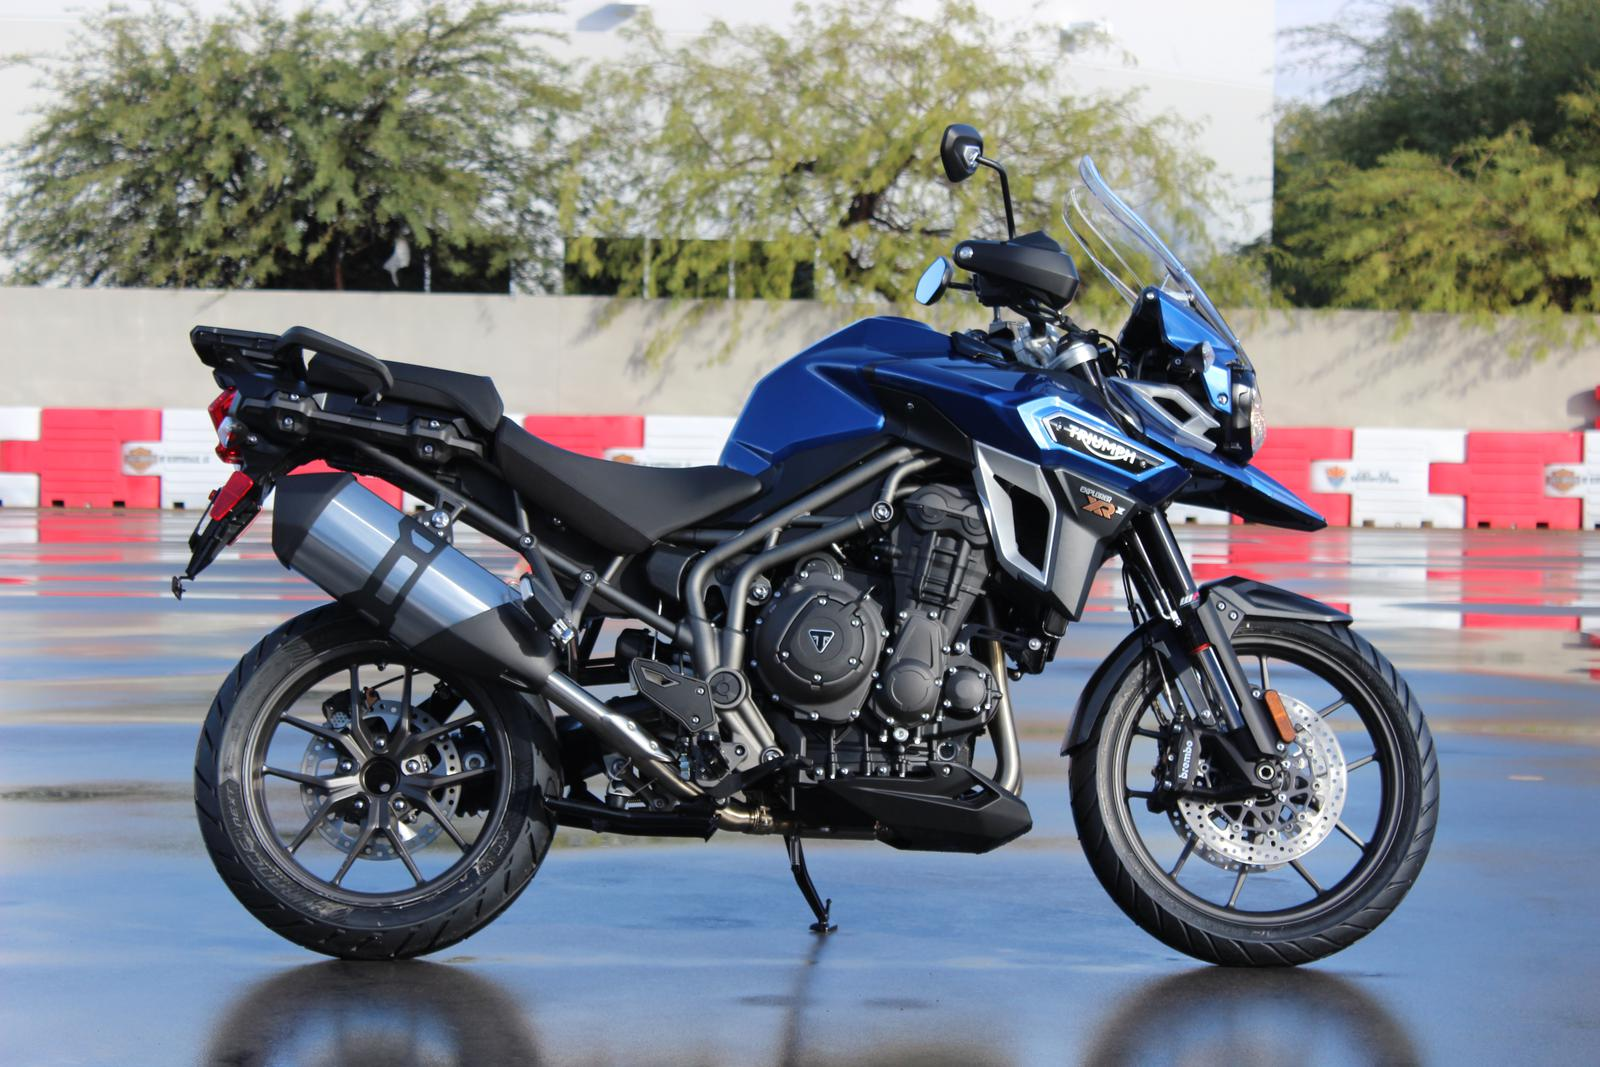 2017 triumph tiger explorer xrx for sale in scottsdale, az | go az